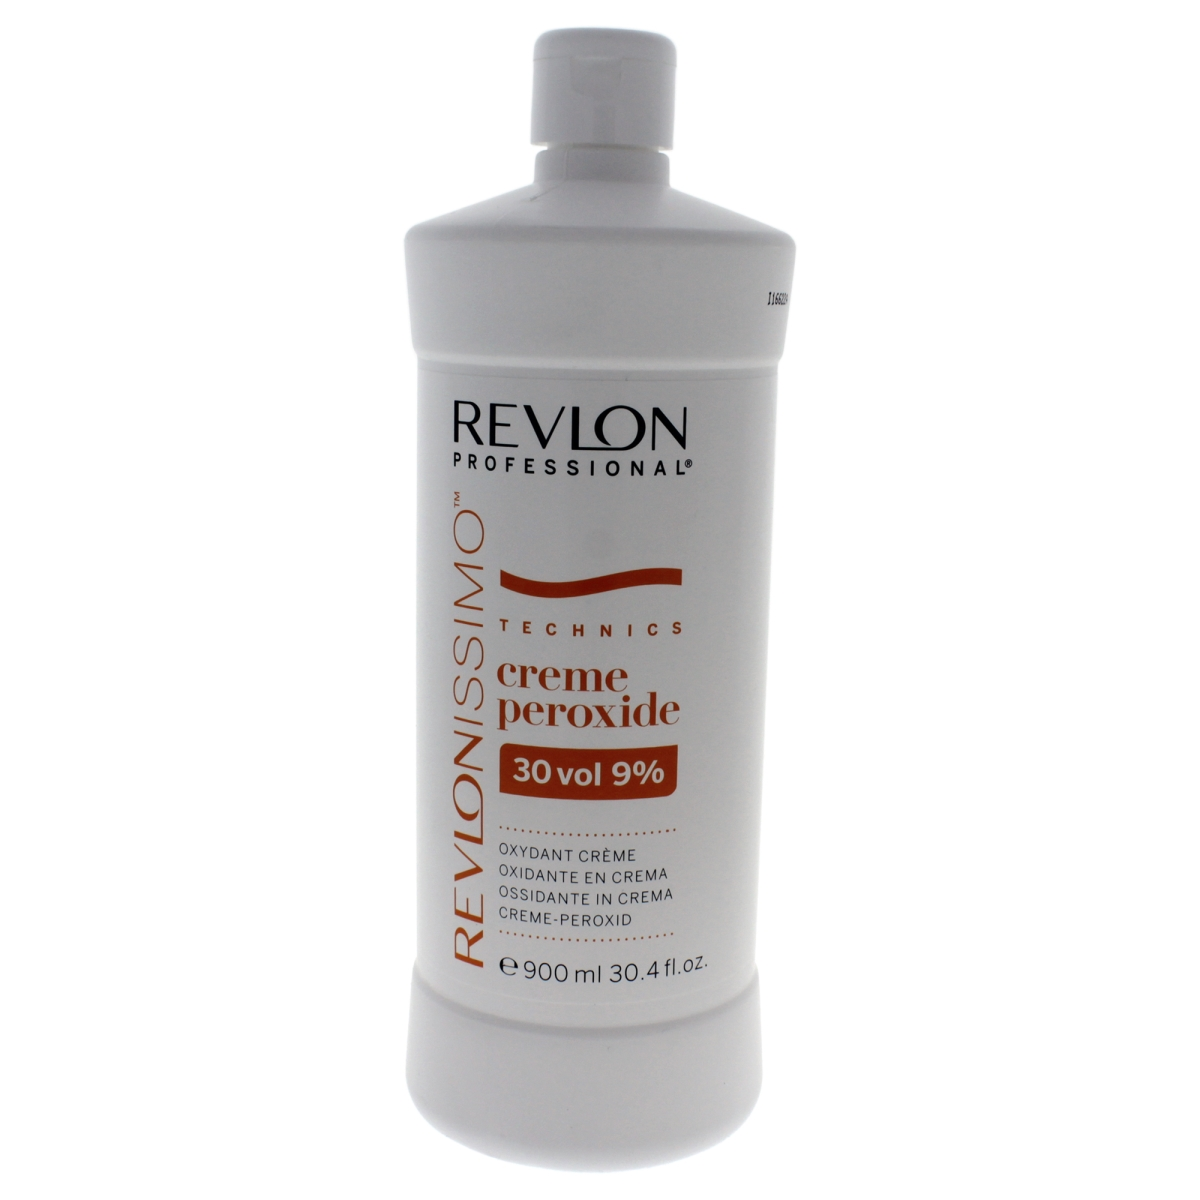 Revlon U-HC-11976 30.4 oz Creme Peroxide 30 Vol 9 percent for Unisex